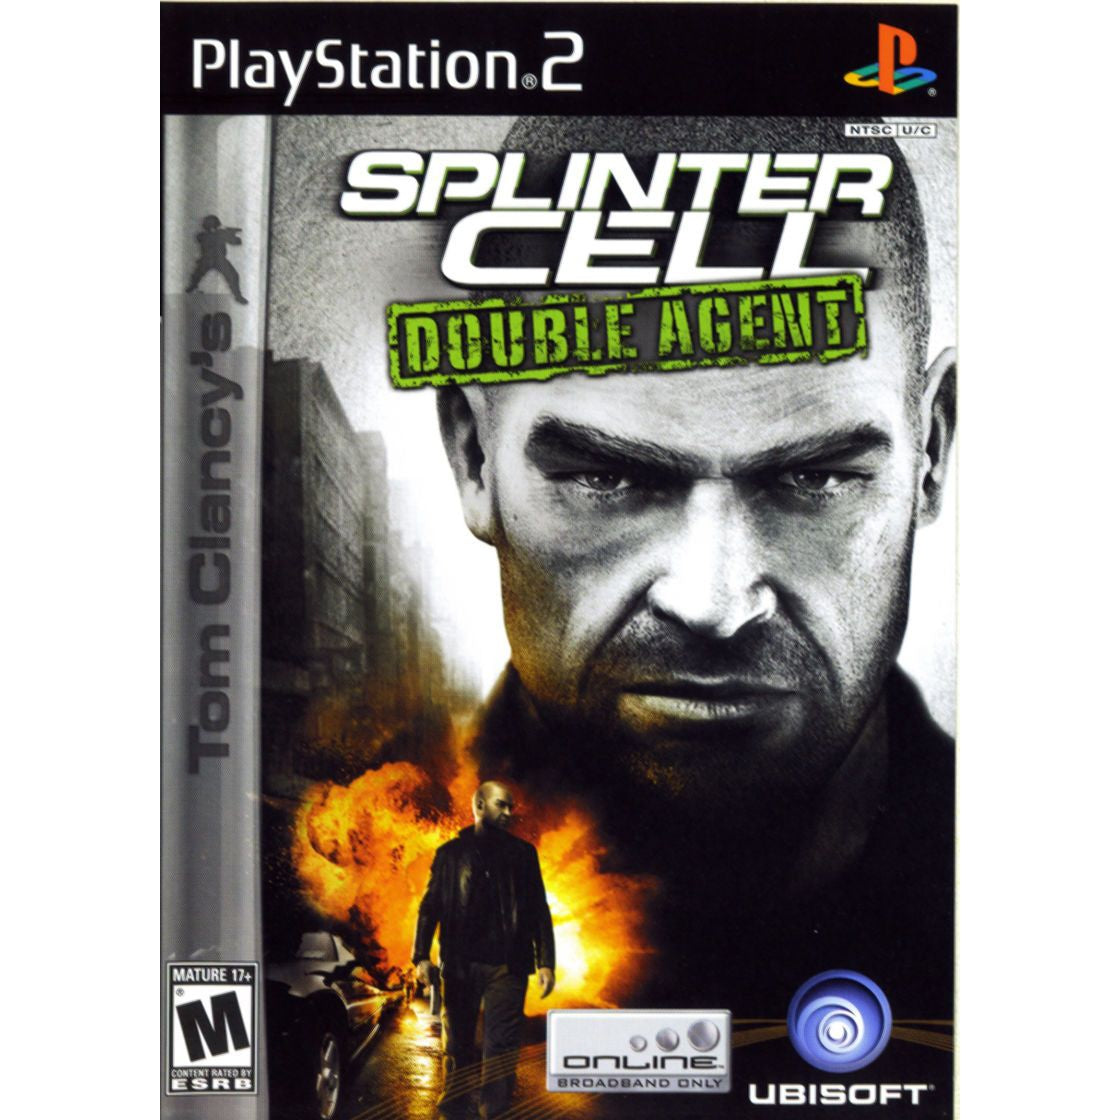 Tom Clancy's Splinter Cell: Double Agent - PlayStation 2 (PS2) Game Complete - YourGamingShop.com - Buy, Sell, Trade Video Games Online. 120 Day Warranty. Satisfaction Guaranteed.